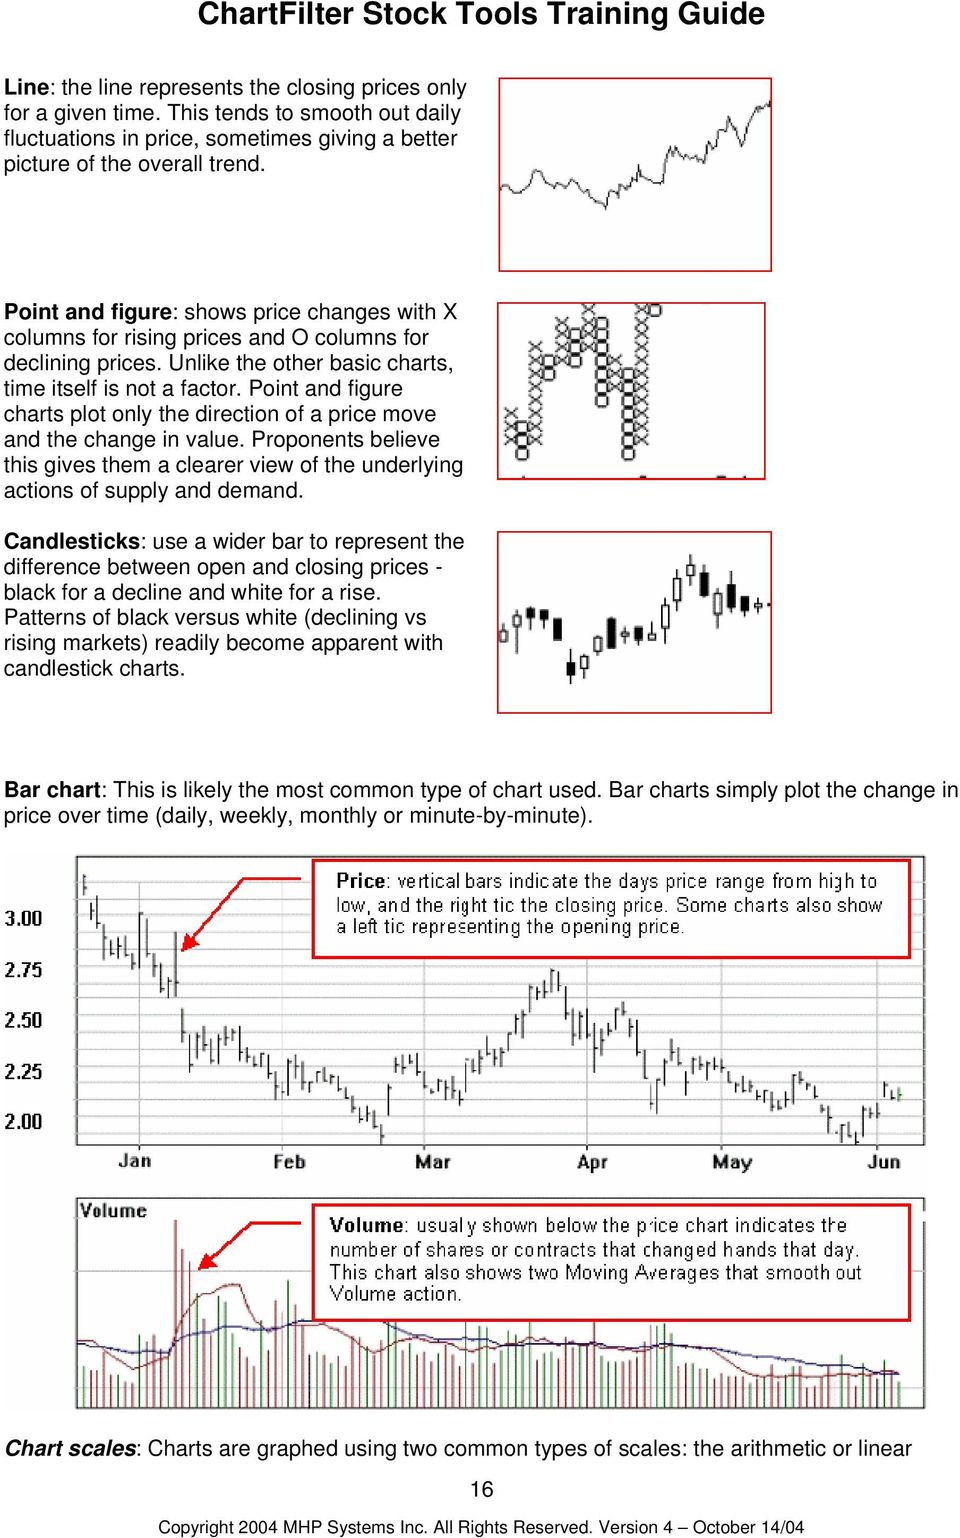 Point and figure charts plot only the direction of a price move and the change in value. Proponents believe this gives them a clearer view of the underlying actions of supply and demand.